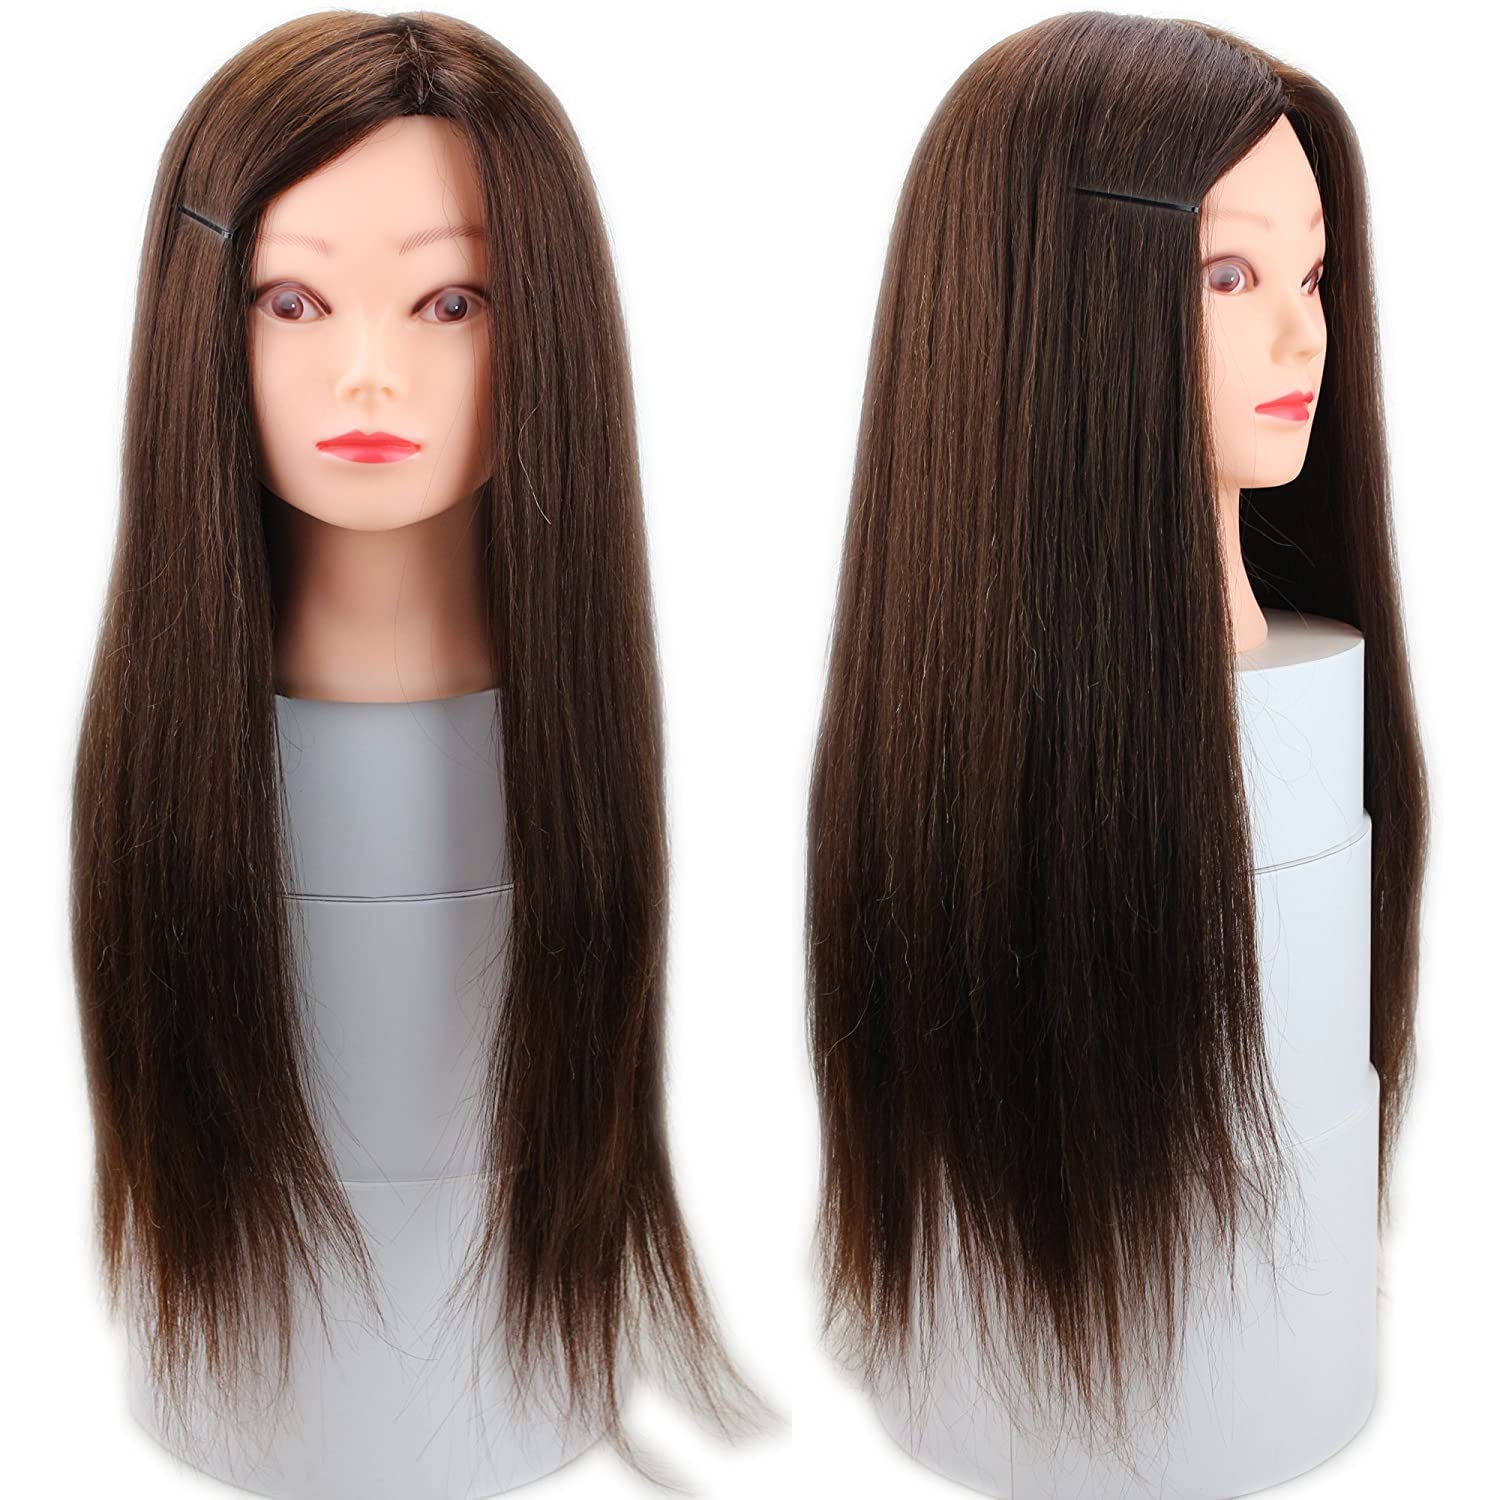 Dreambeauty Hairdressing Training Heads 50% Real Human Hair Mannequin Styling Dolls Head (Brown) Qingdao Feiyang Hair Co. Ltd